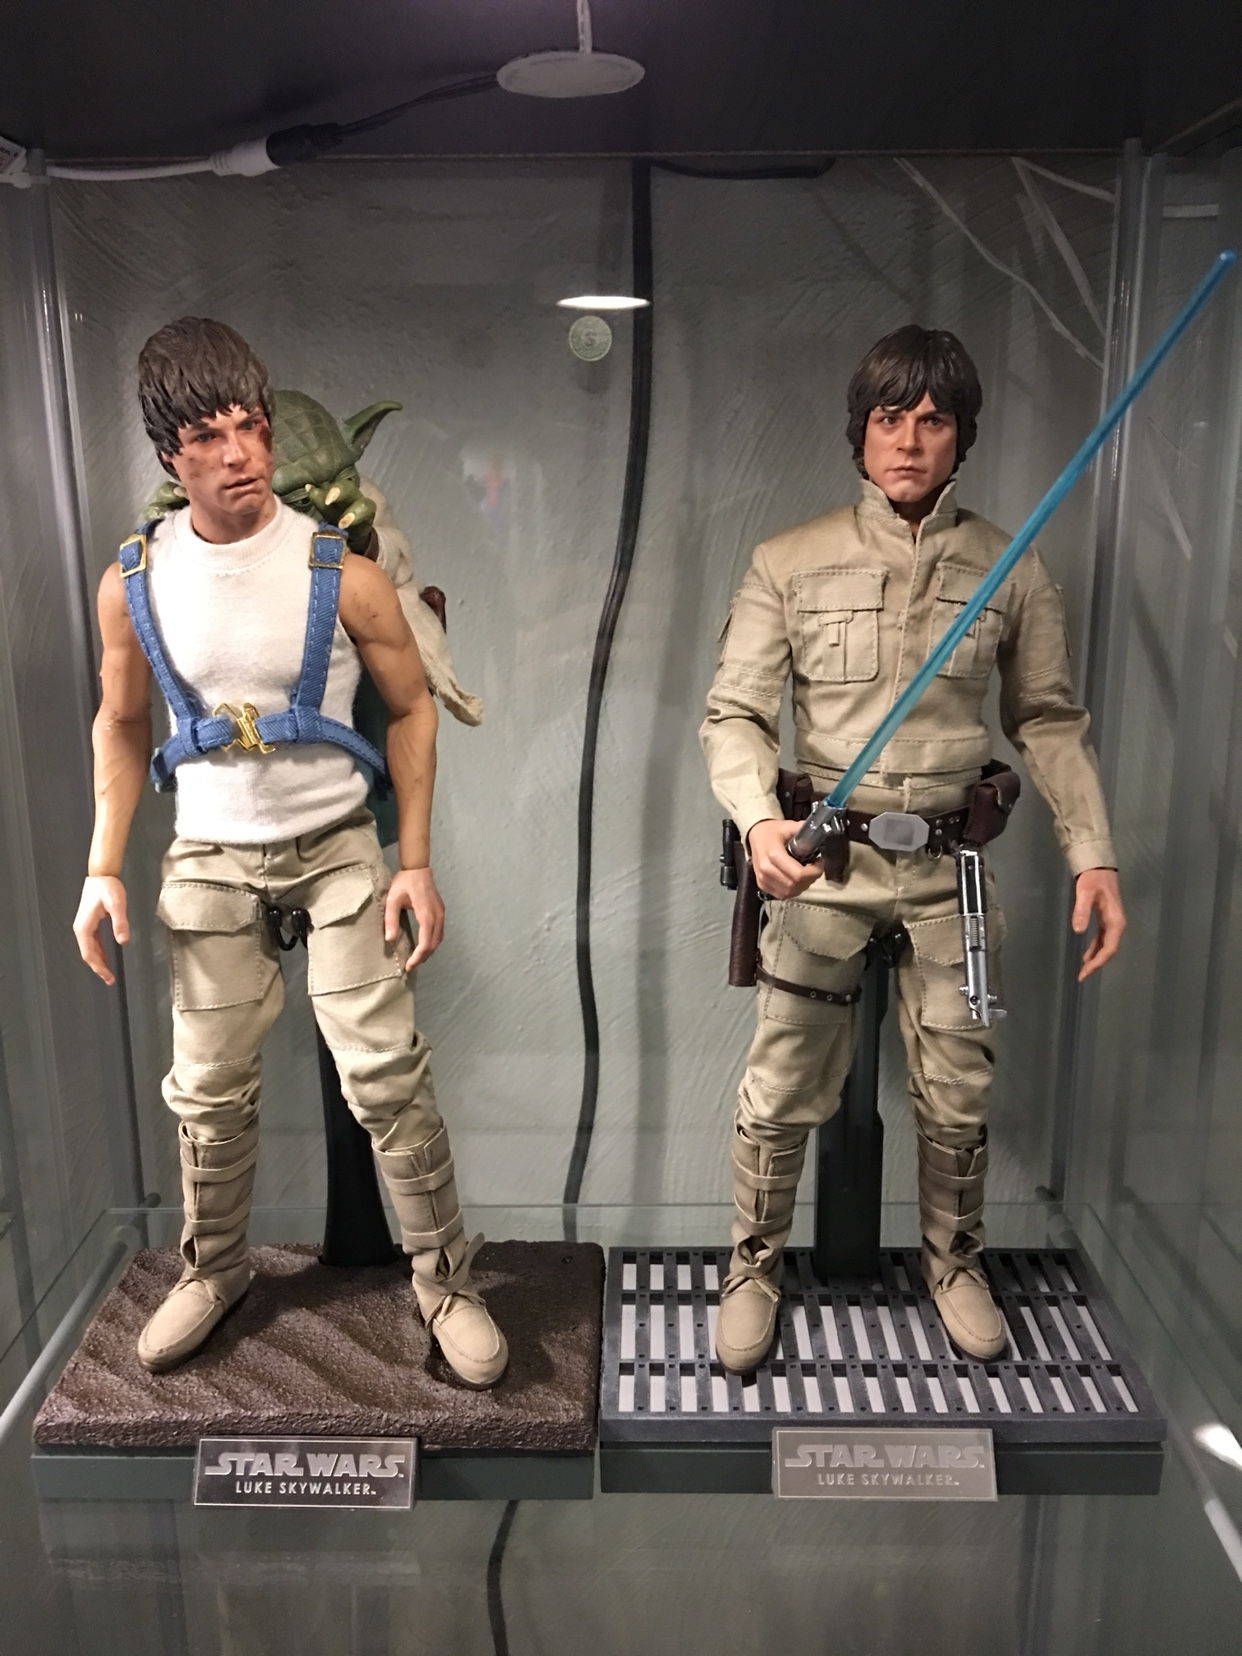 HOT TOYS STAR WARS LUKE SKYWALKER BESPIN OUTFIT DX-07 1//6 NECK POST JOINT NEW